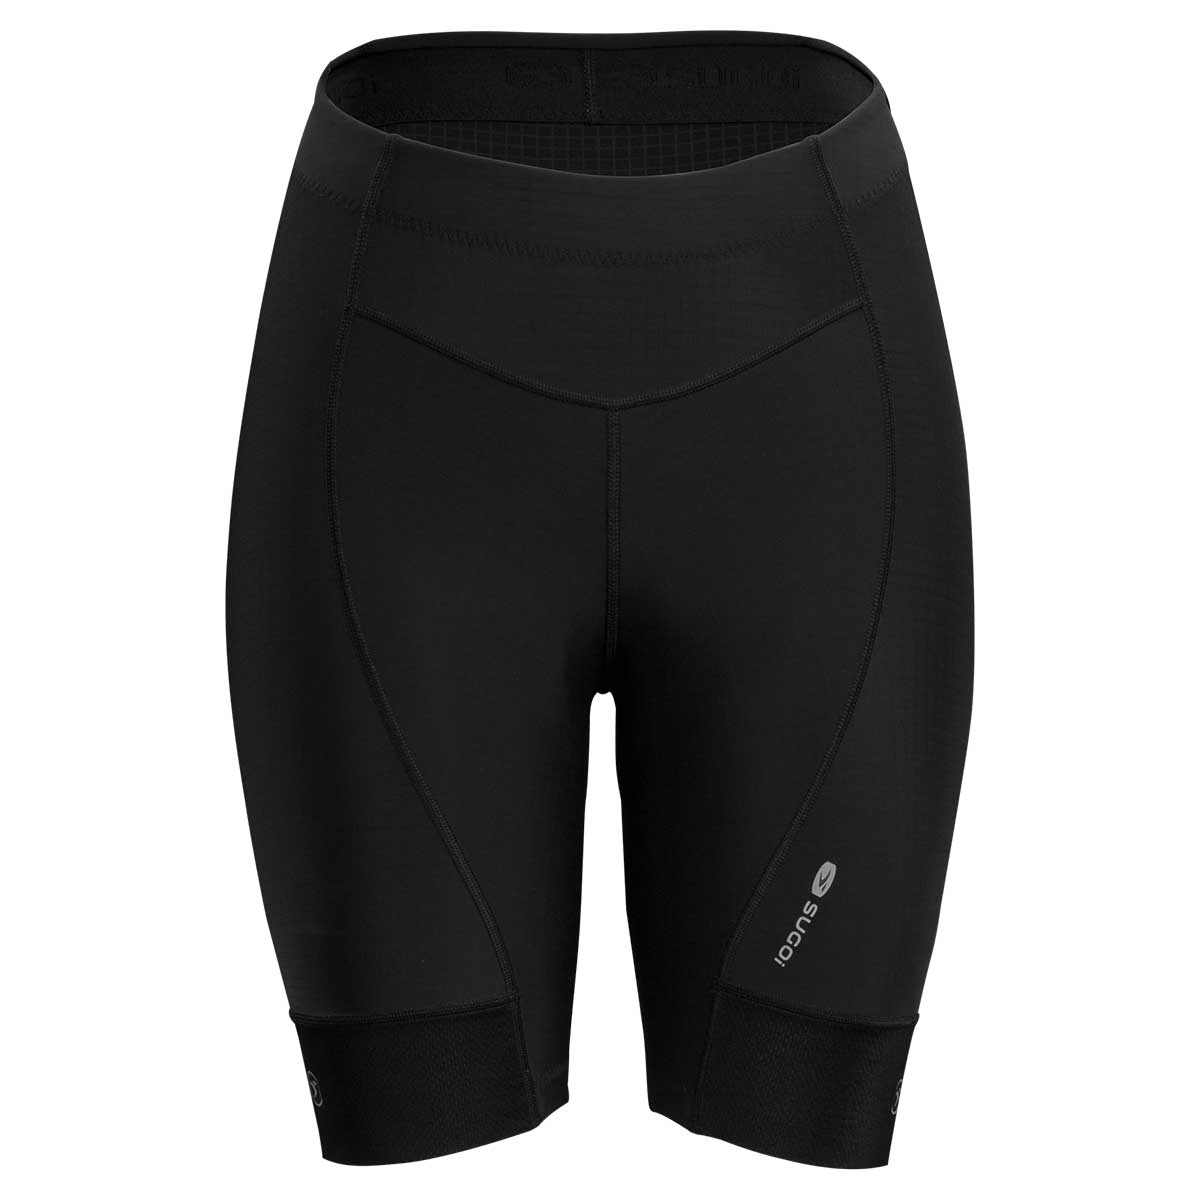 Sugoi women's Evolution bike shorts in black